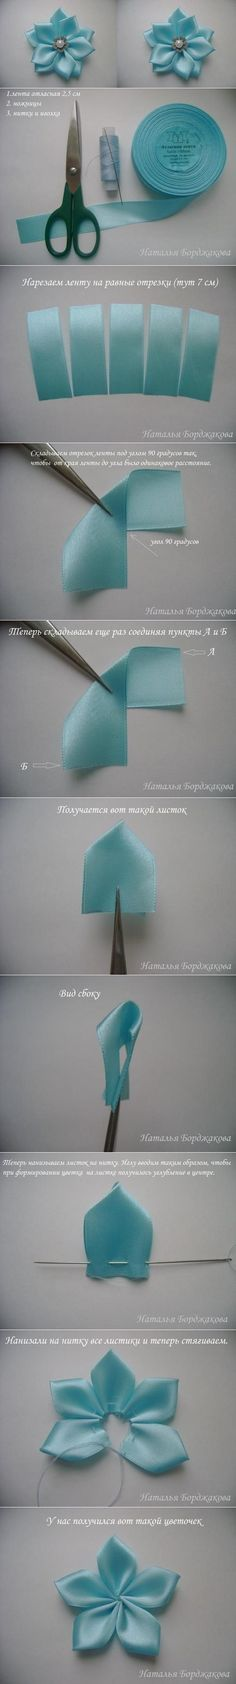 DIY Pointed Petals Ribbon Flower DIY Pointed Petals Ribbon Flower